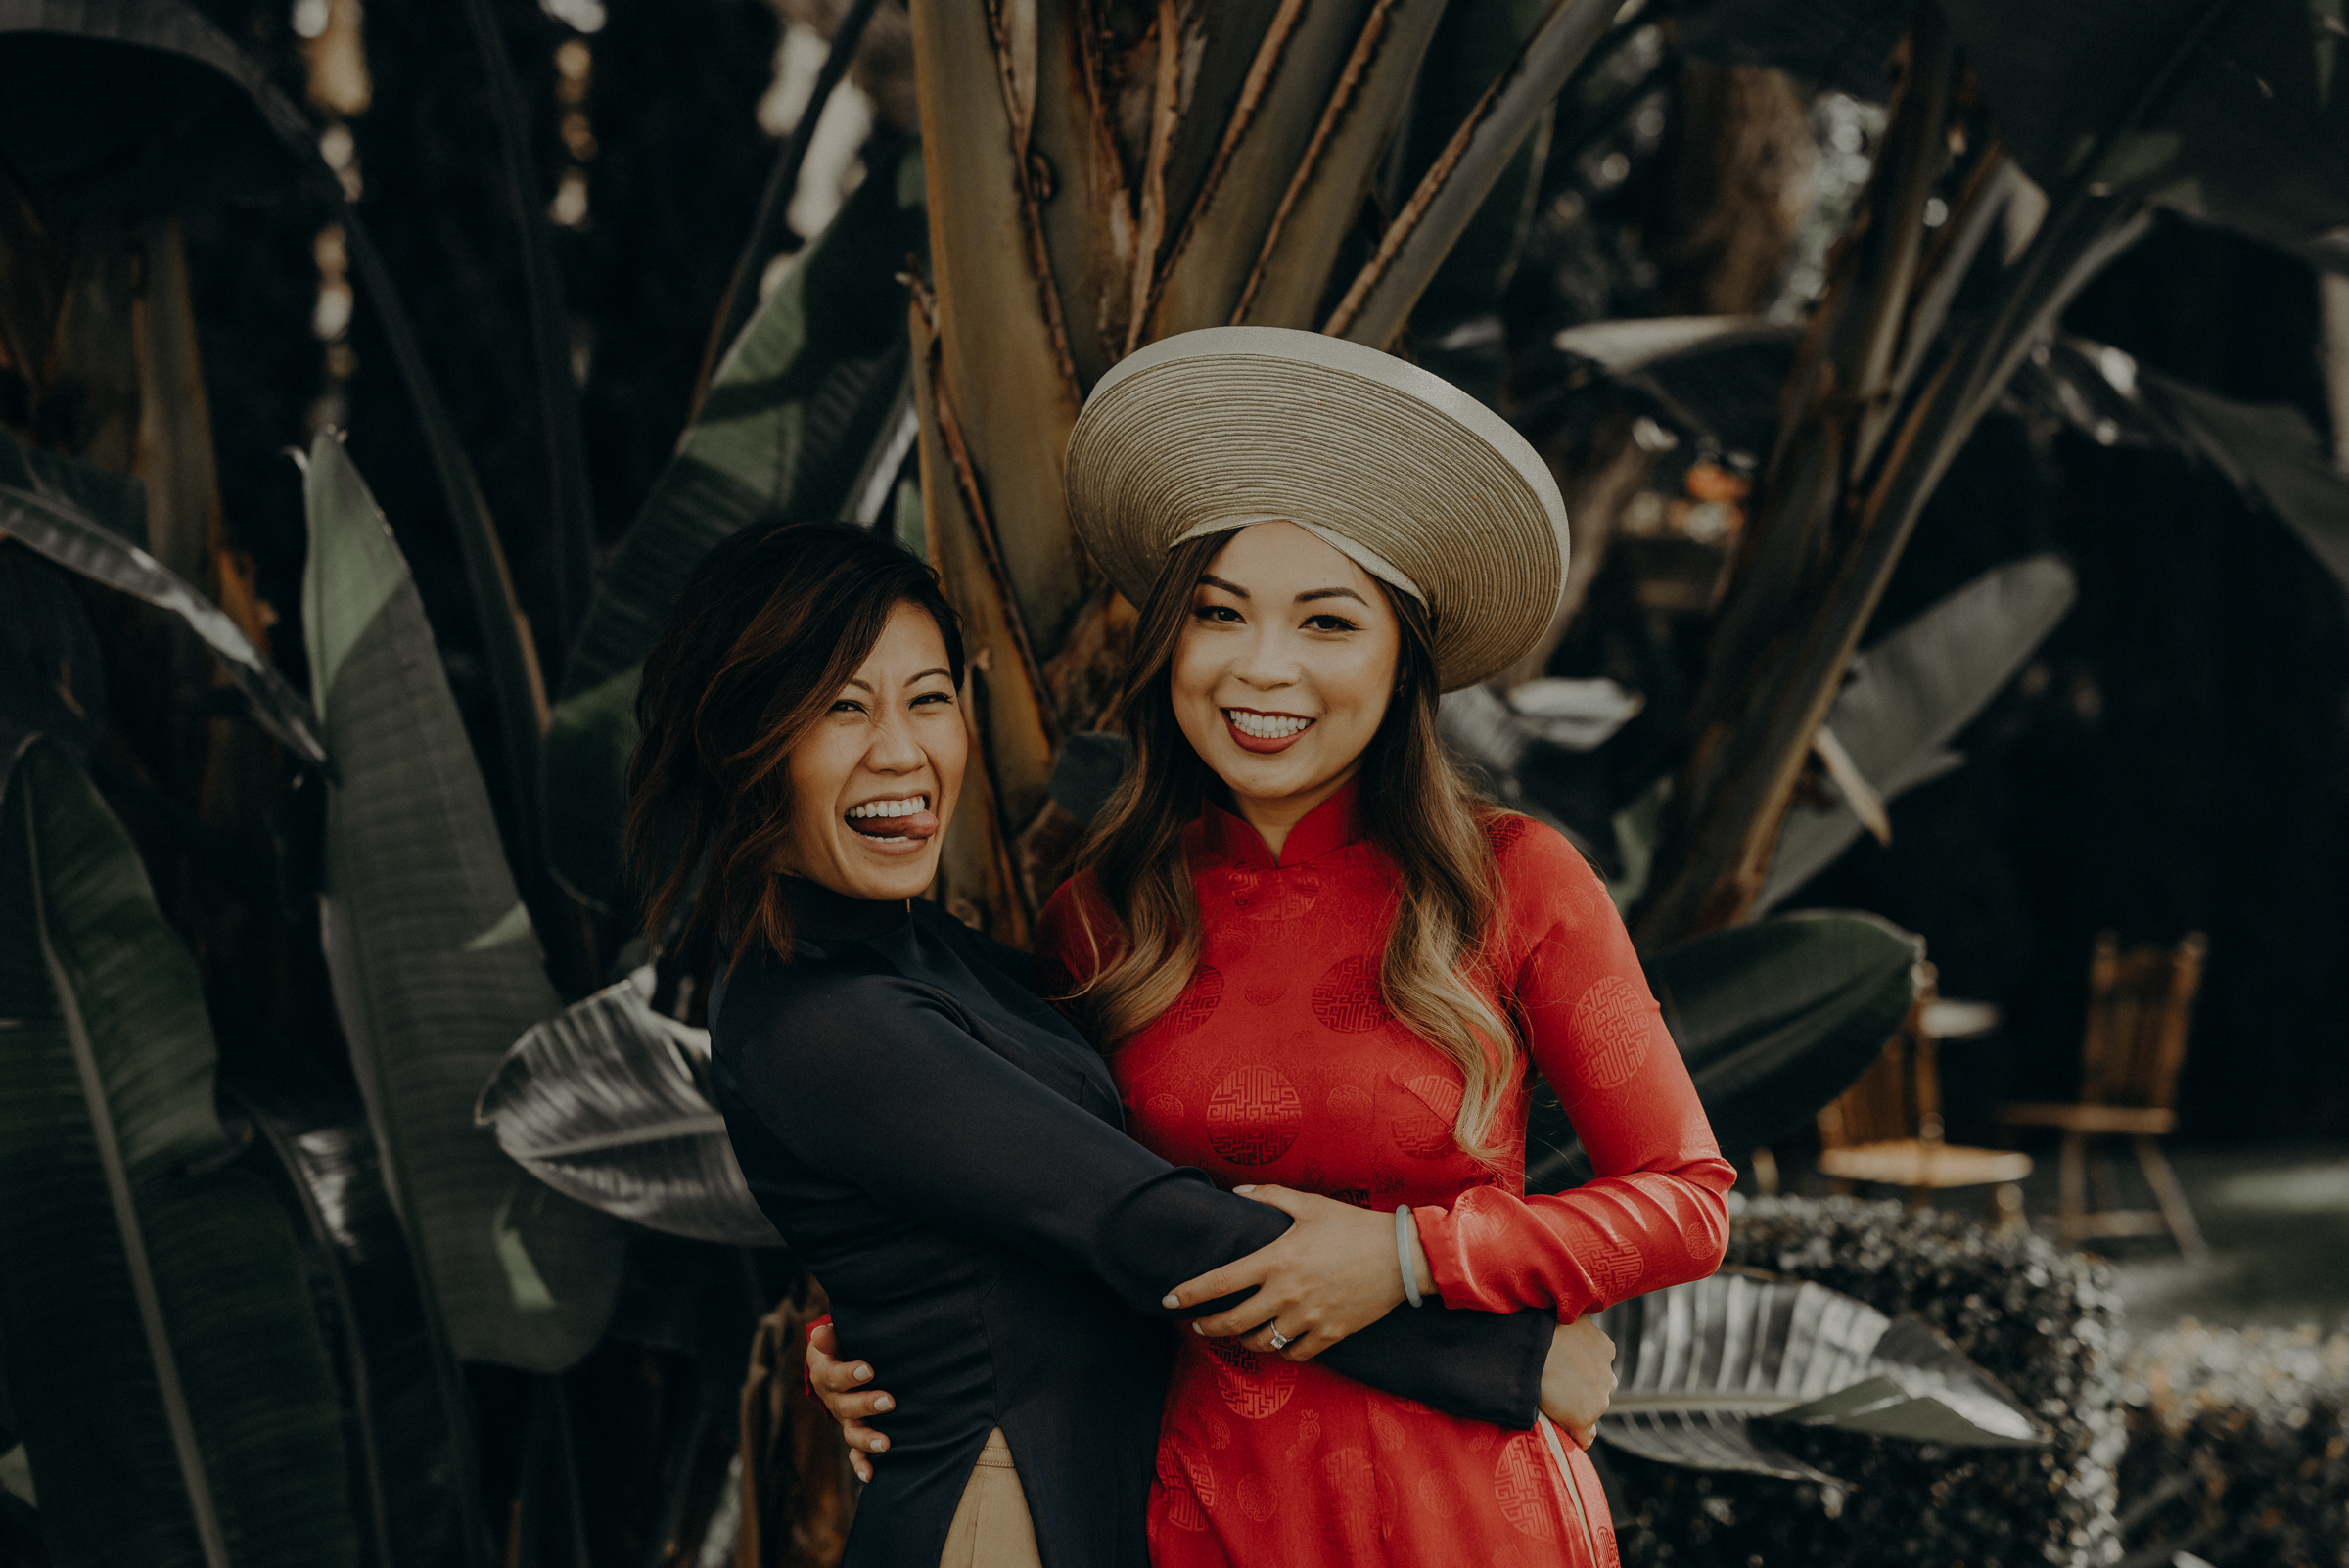 Los Angeles Wedding Photographer - IsaiahAndTaylor.com - The Ebell of Long Beach Wedding - Traditional Vietnamese tea ceremony-069.jpg